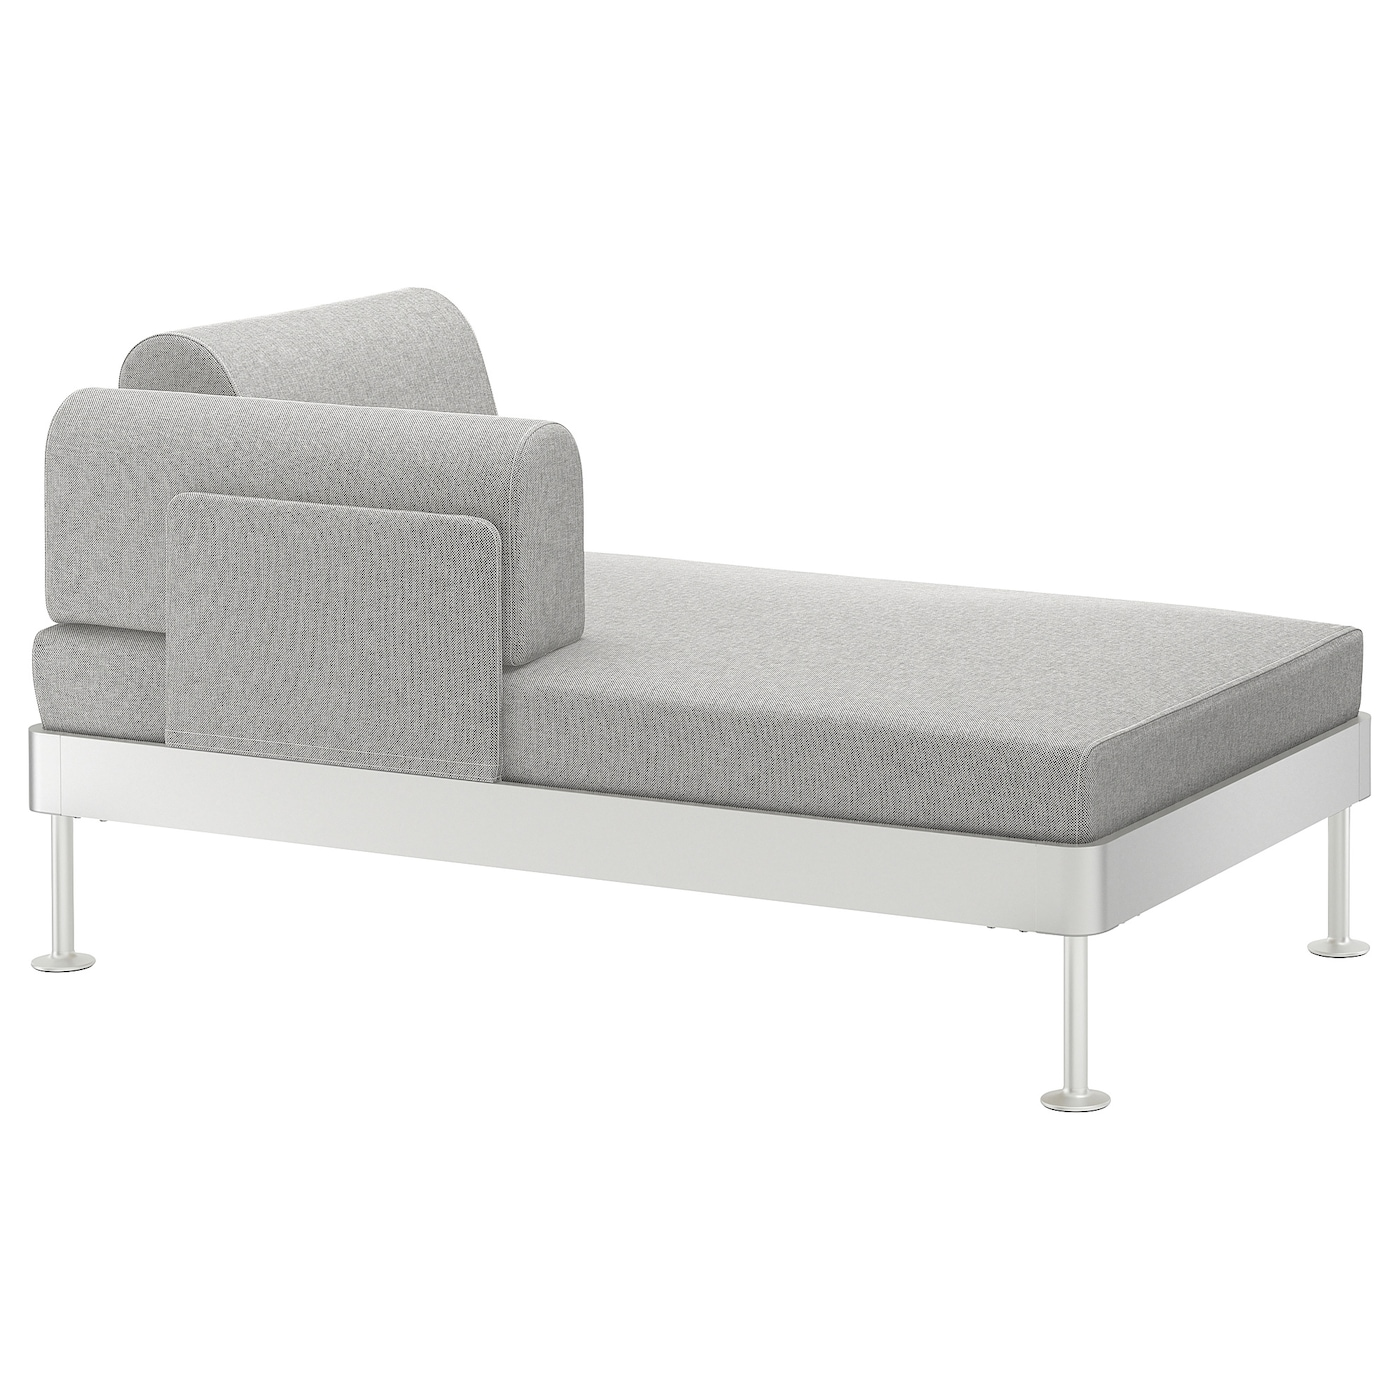 Chaise lounges ikea - Chaise longue modernos ...